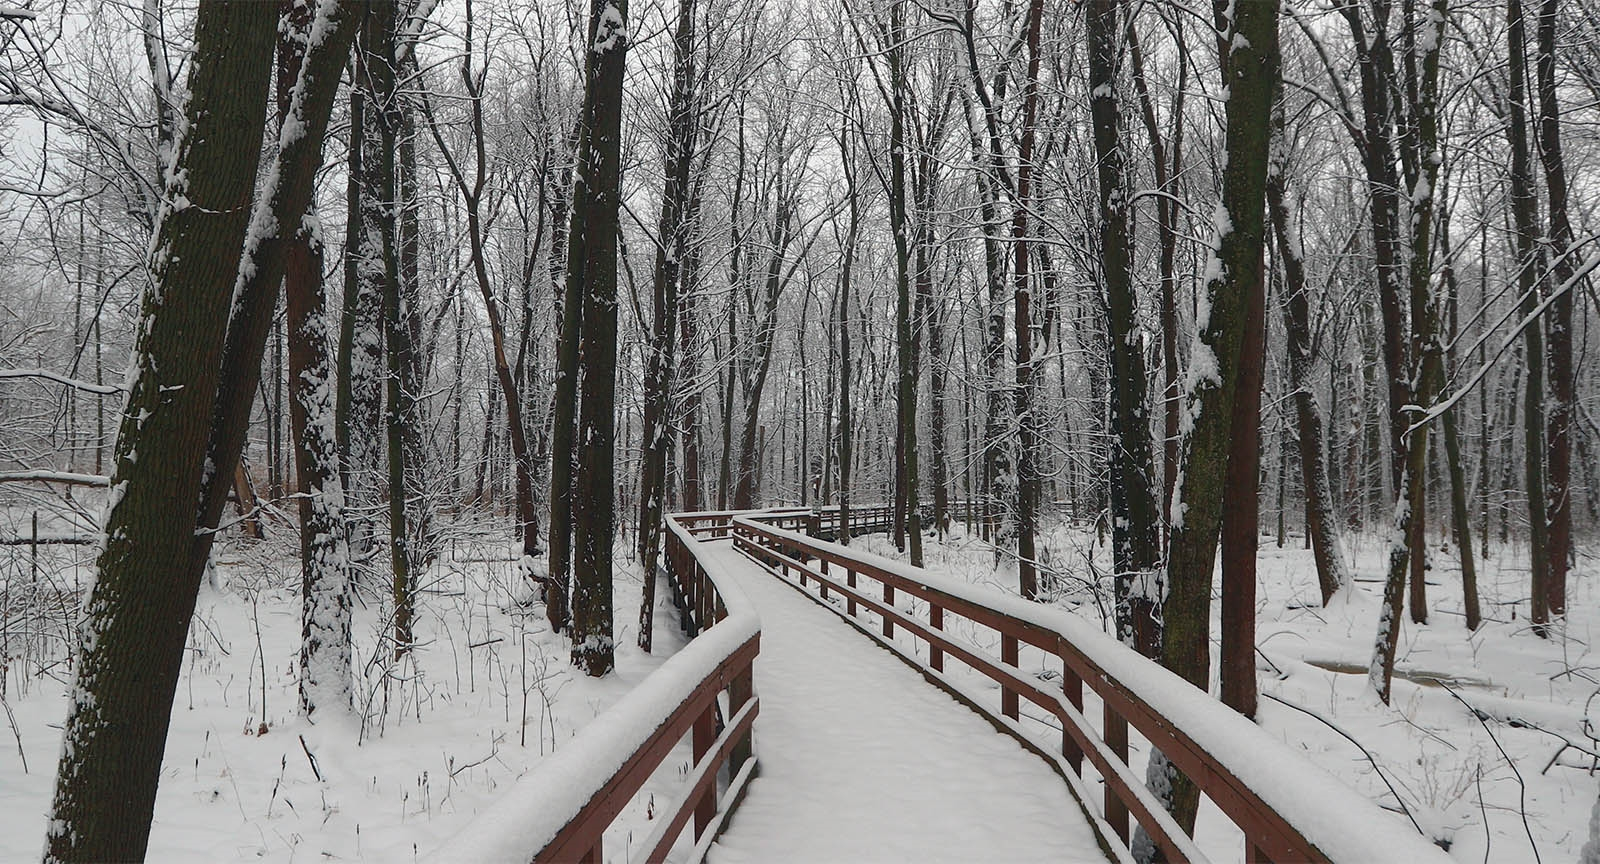 Snow clings to the trees and foot path at Great Baehre Conservation Park in  Amherst.